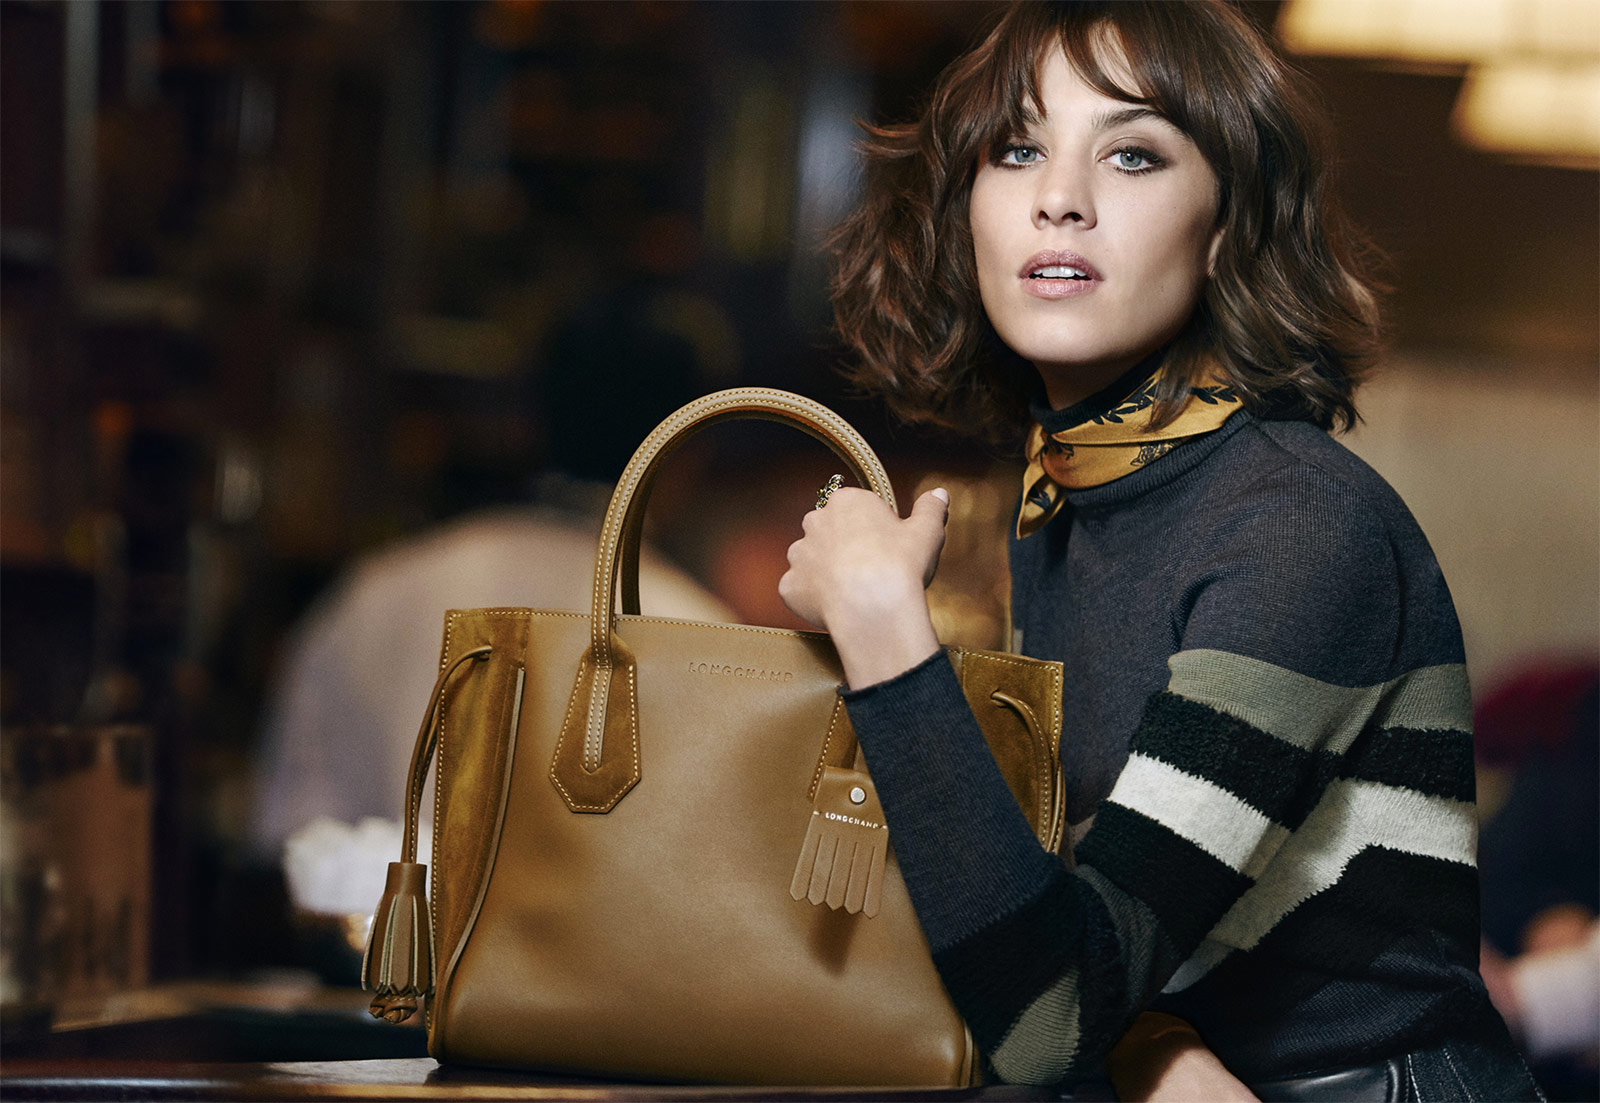 Glamour girl and style icon Alexa Chung fronts Longchamp's Autumn 2016 advertising campaign for the second time